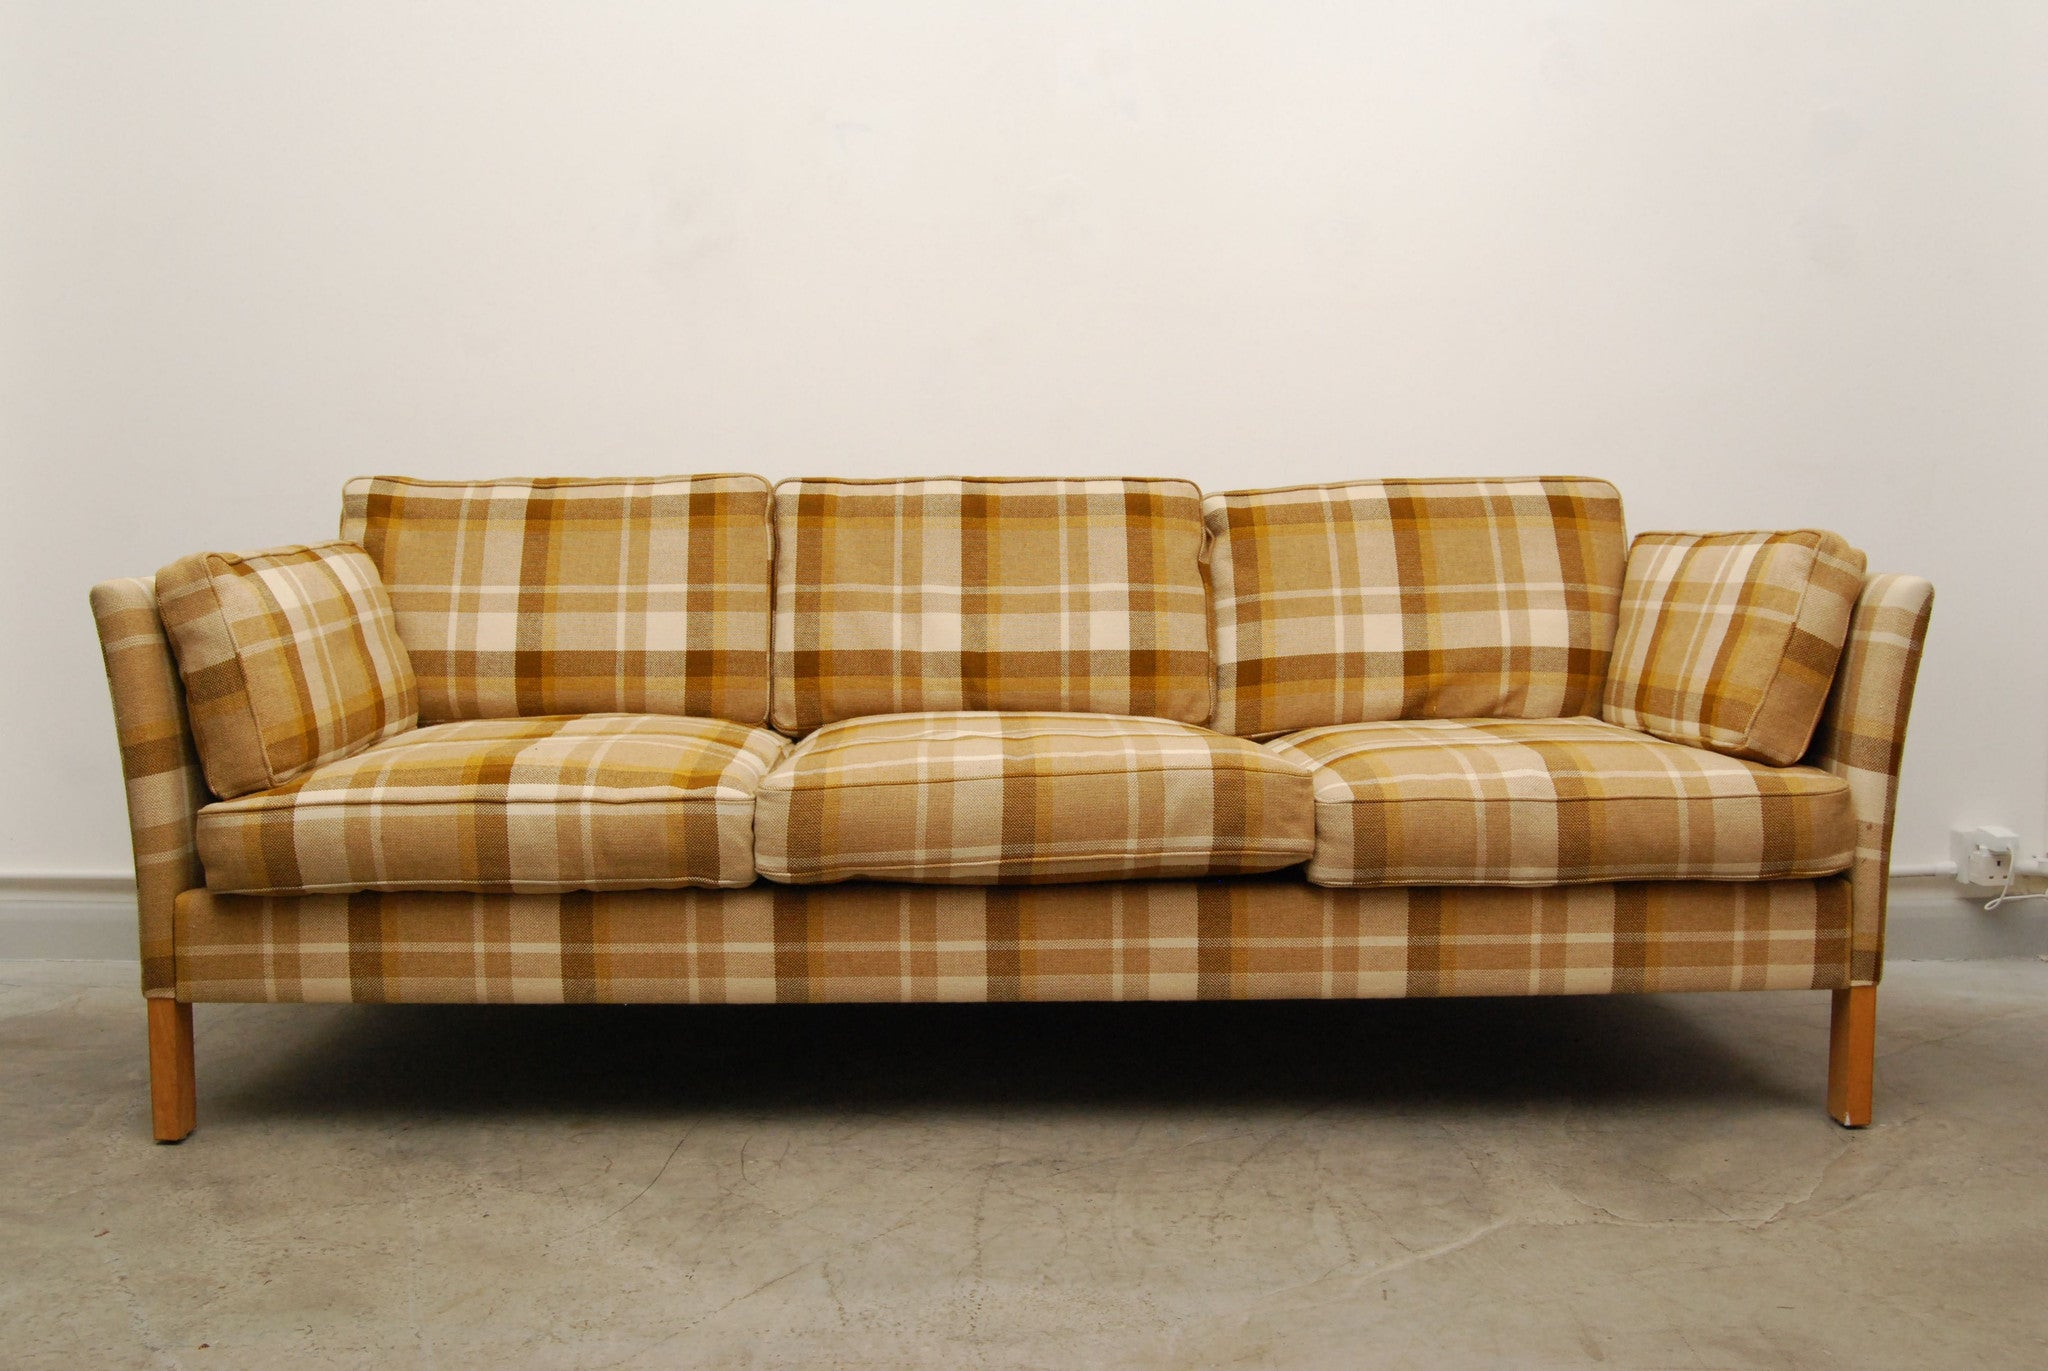 Three seat sofa by DUX